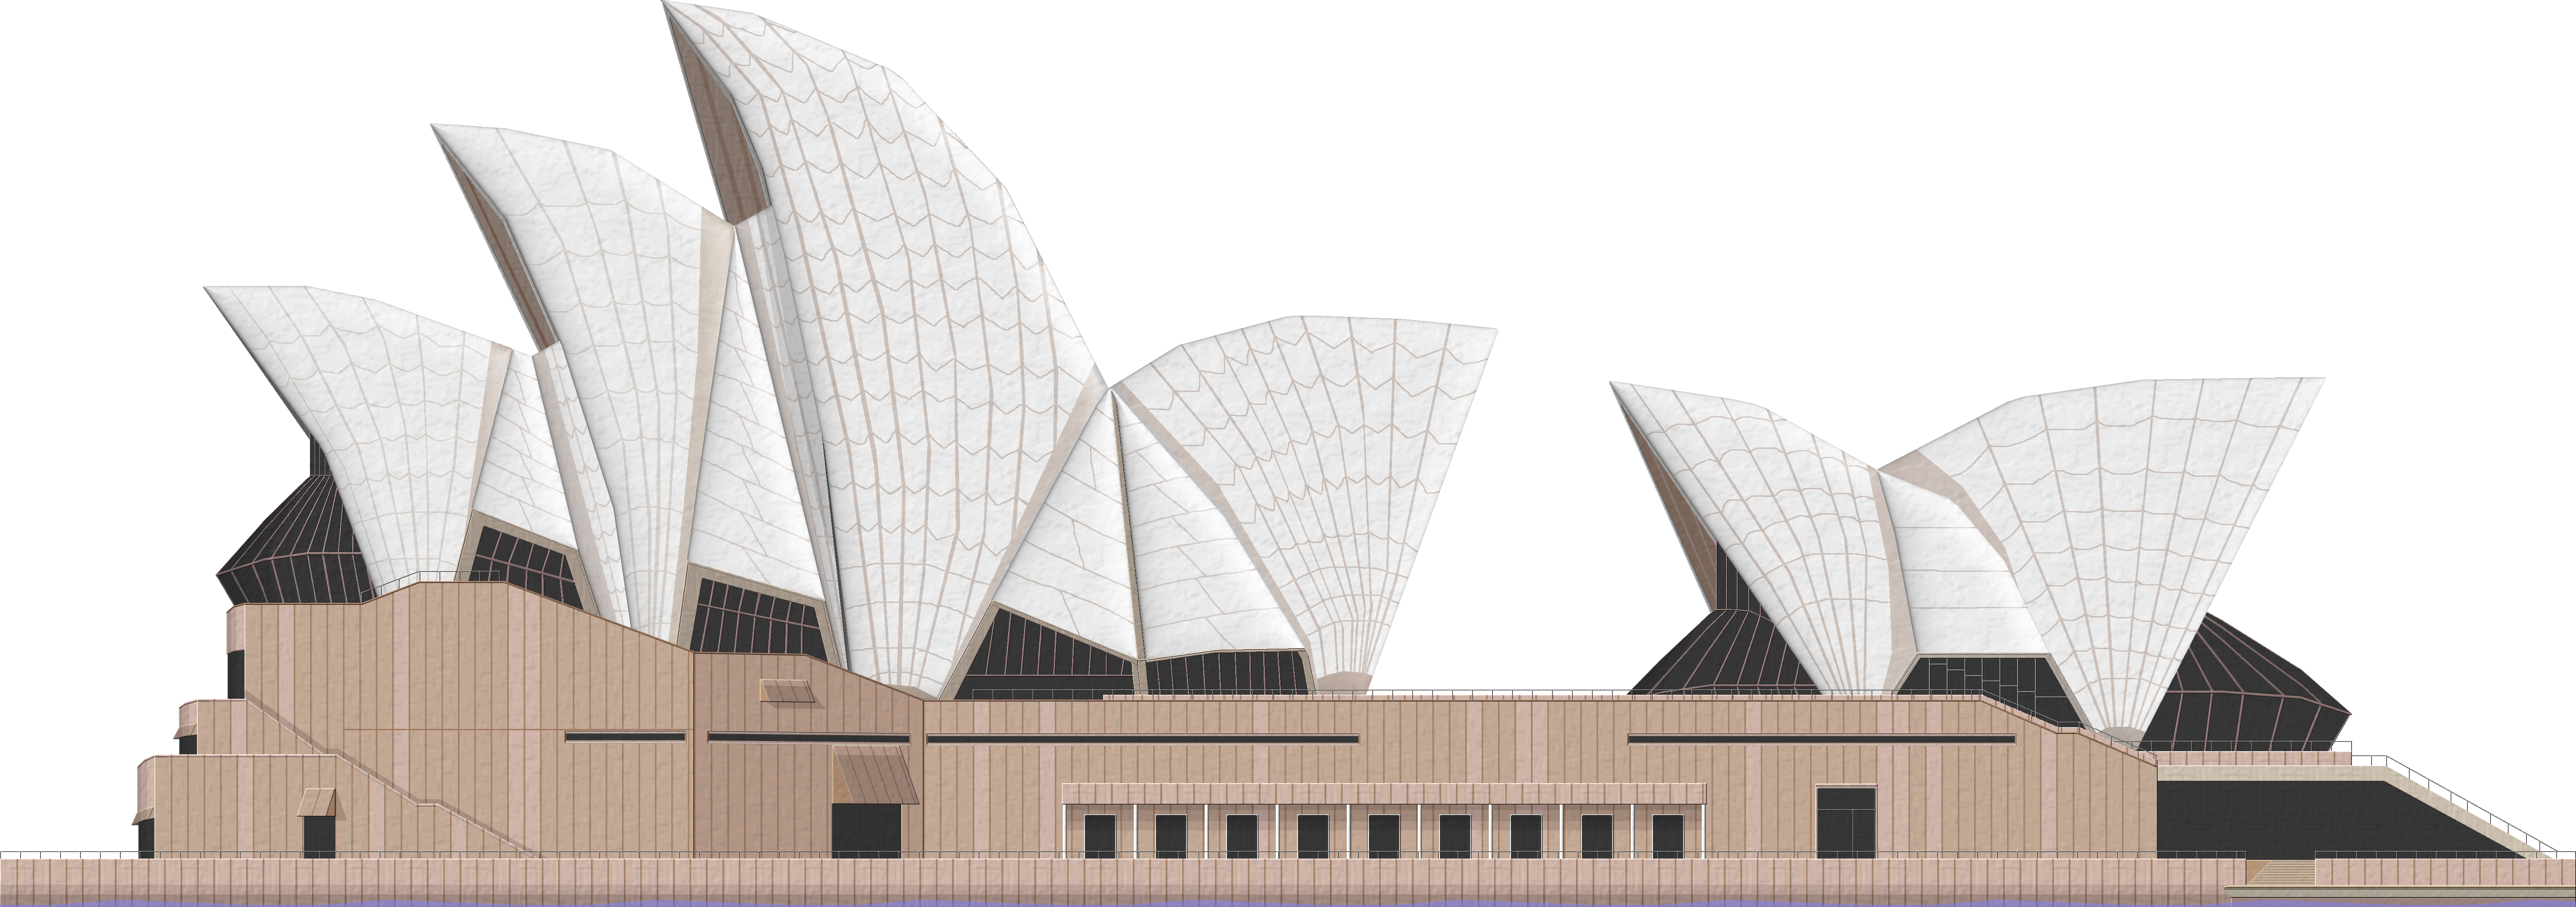 Opera house clipart clipart black and white library Sydney Opera House PNG File | PNG Mart clipart black and white library